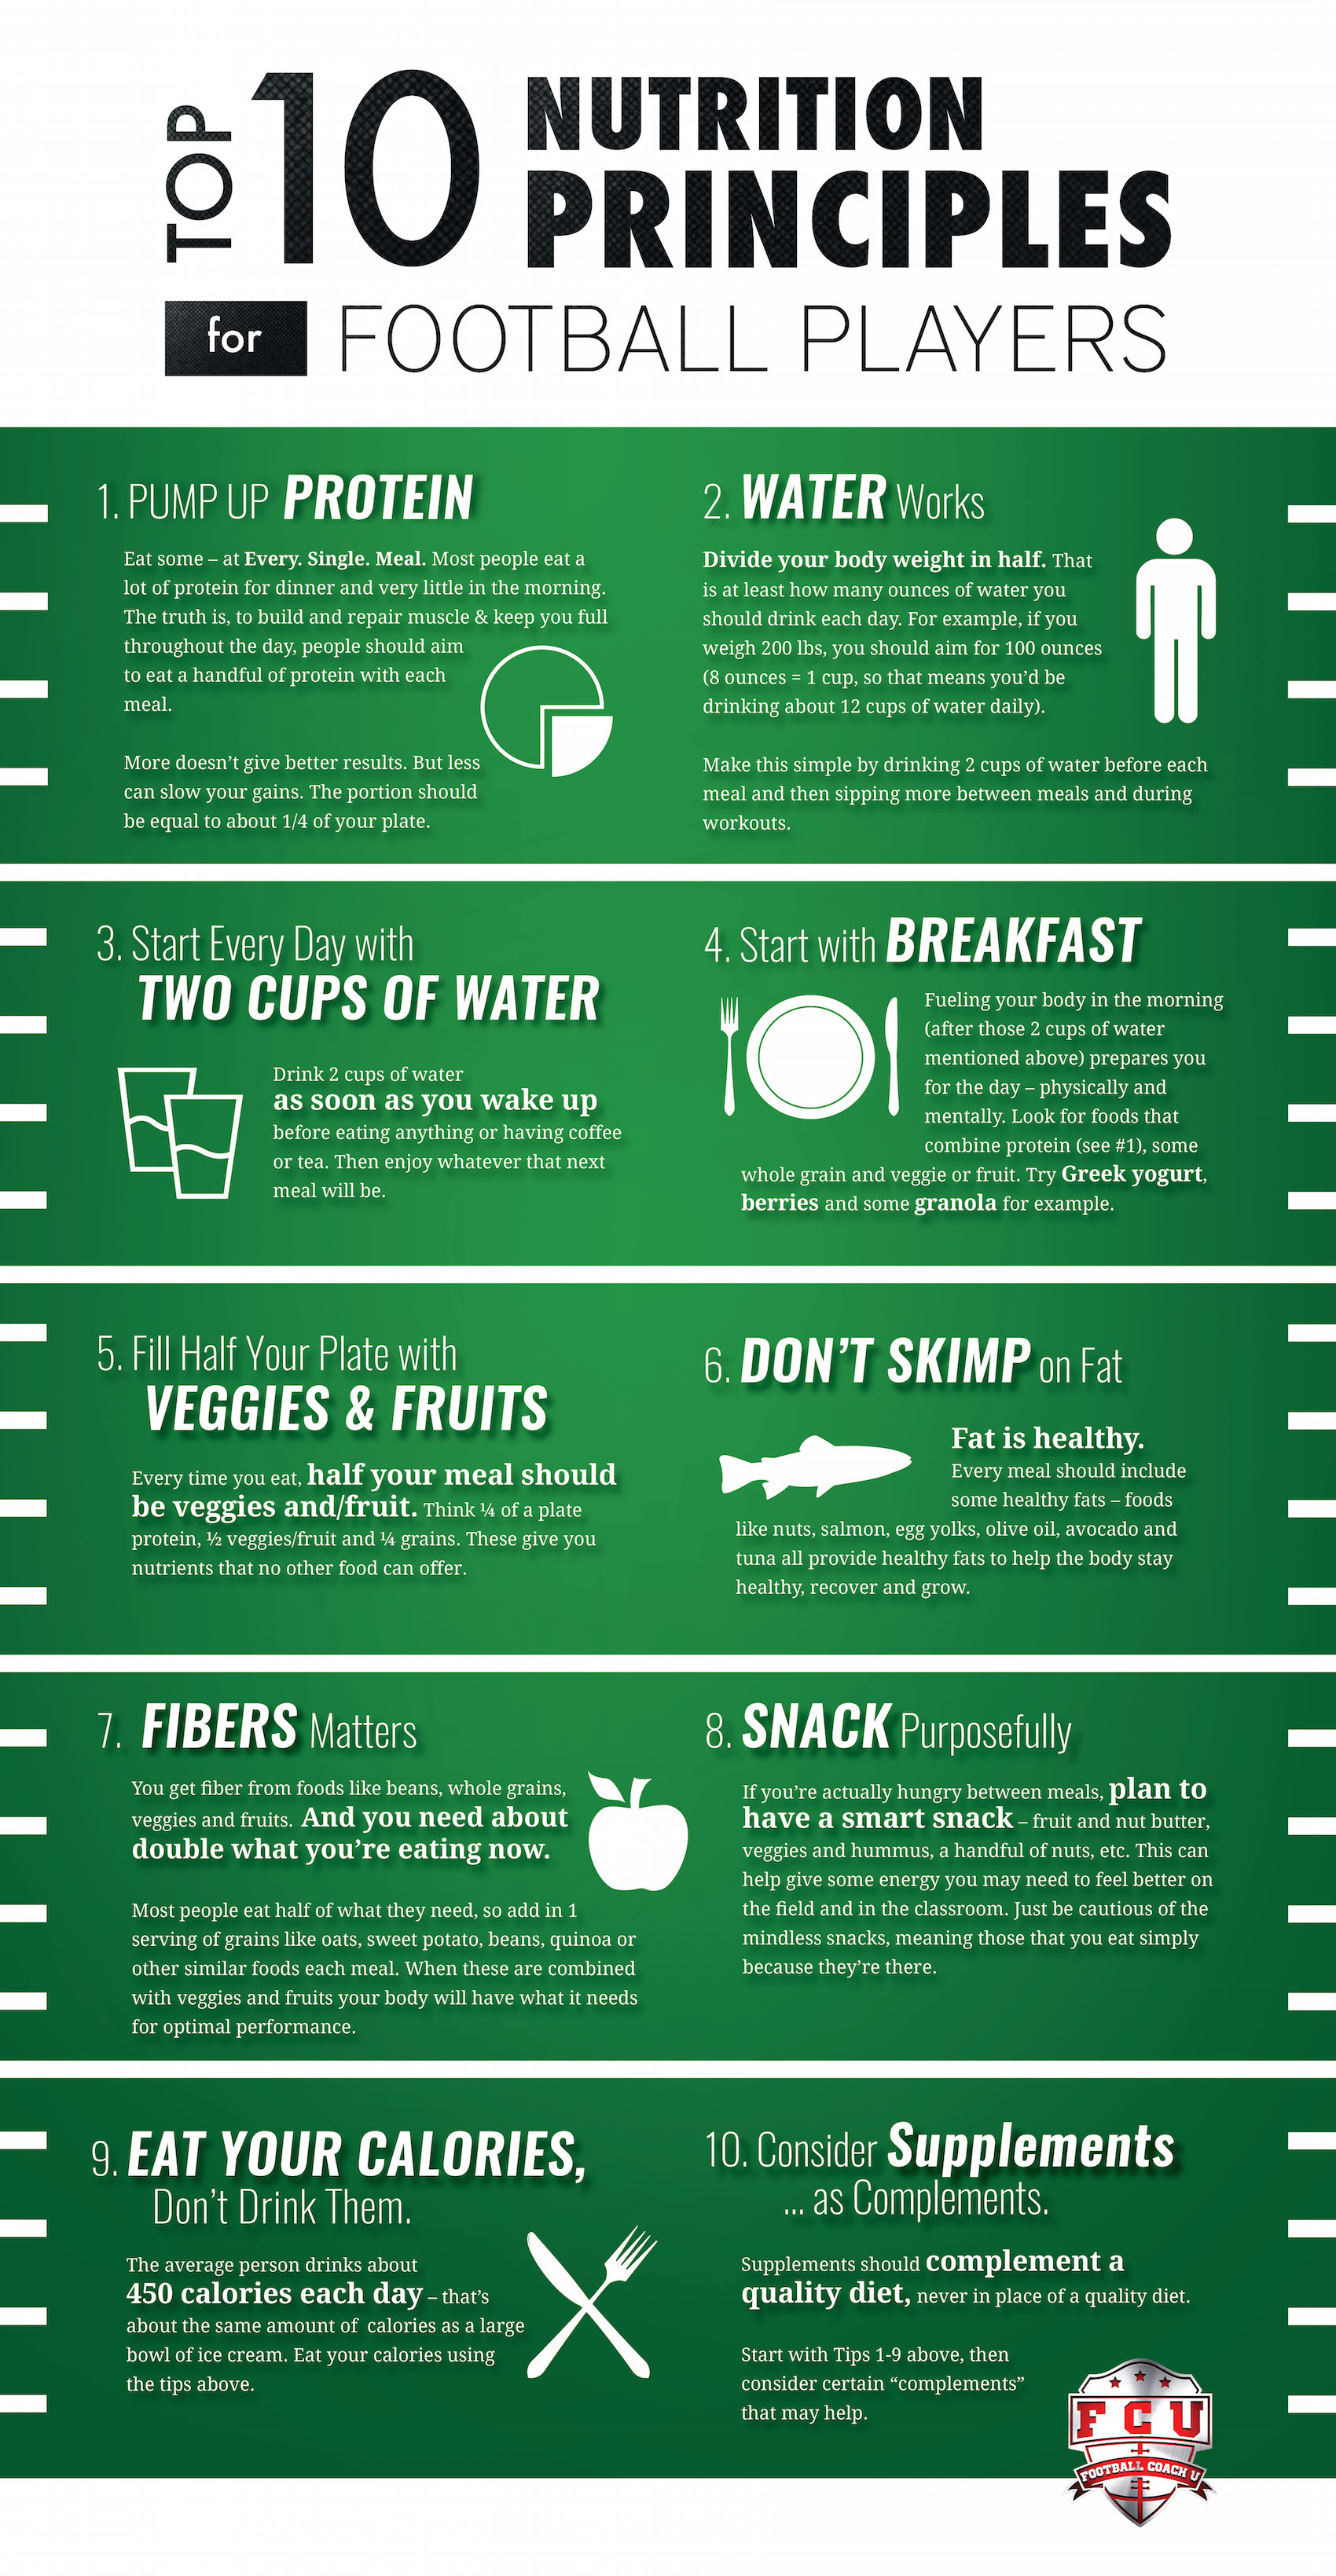 [INFOGRAPHIC] Top 10 Nutrition Principles for Football Players